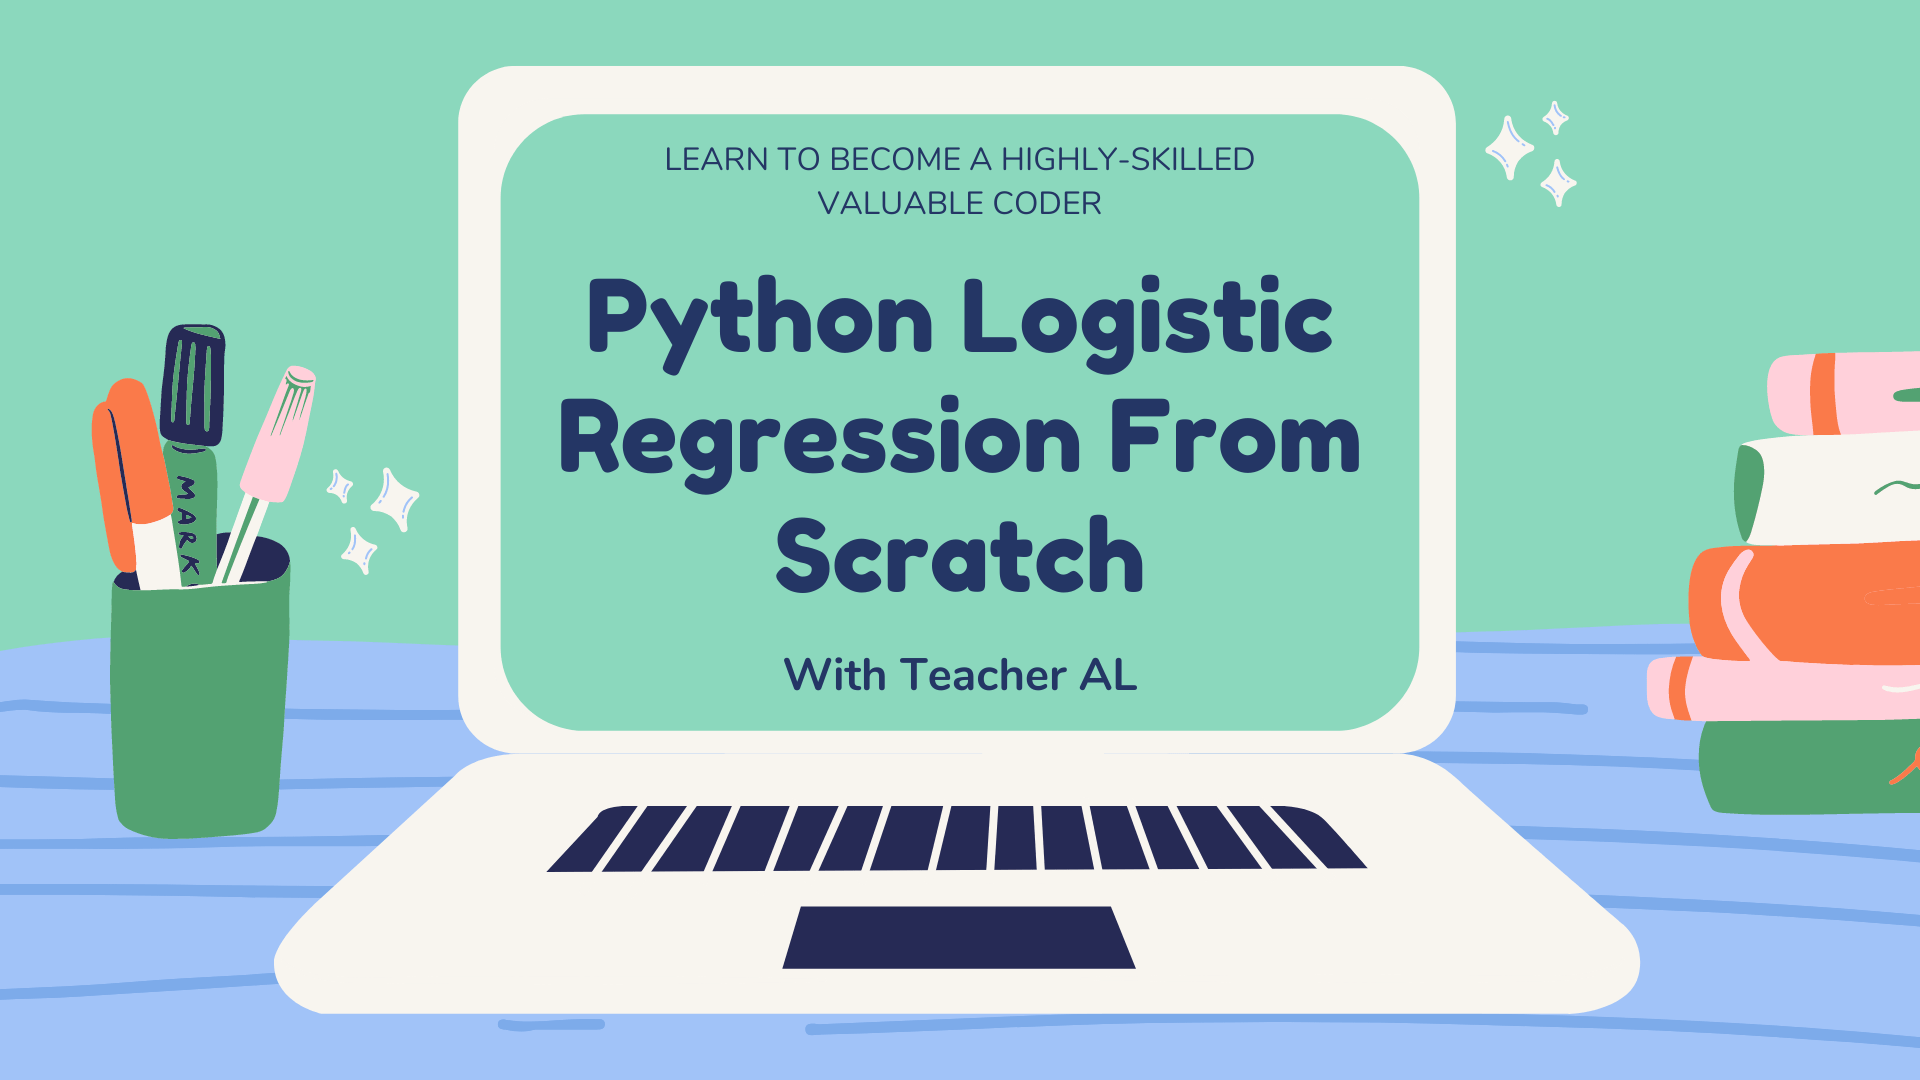 Python Logistic Regression From Scratch